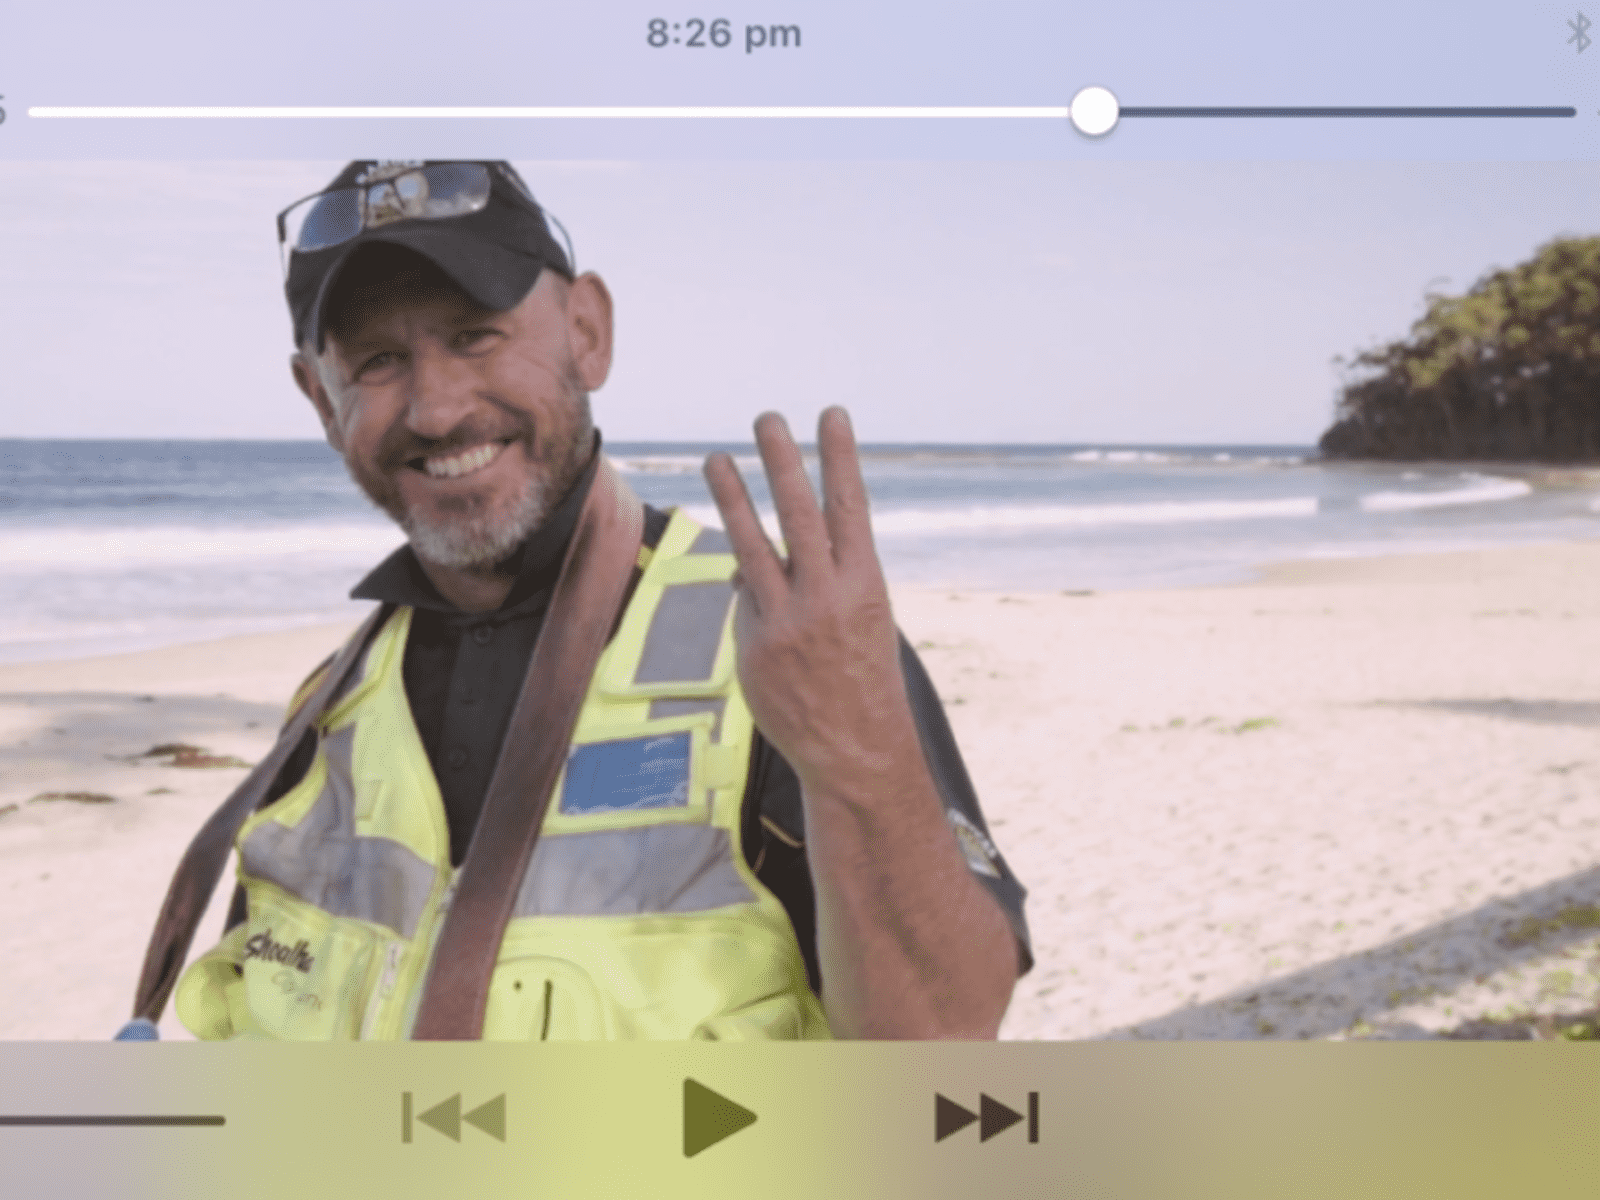 Phil from Gerringong, New South Wales, Australia